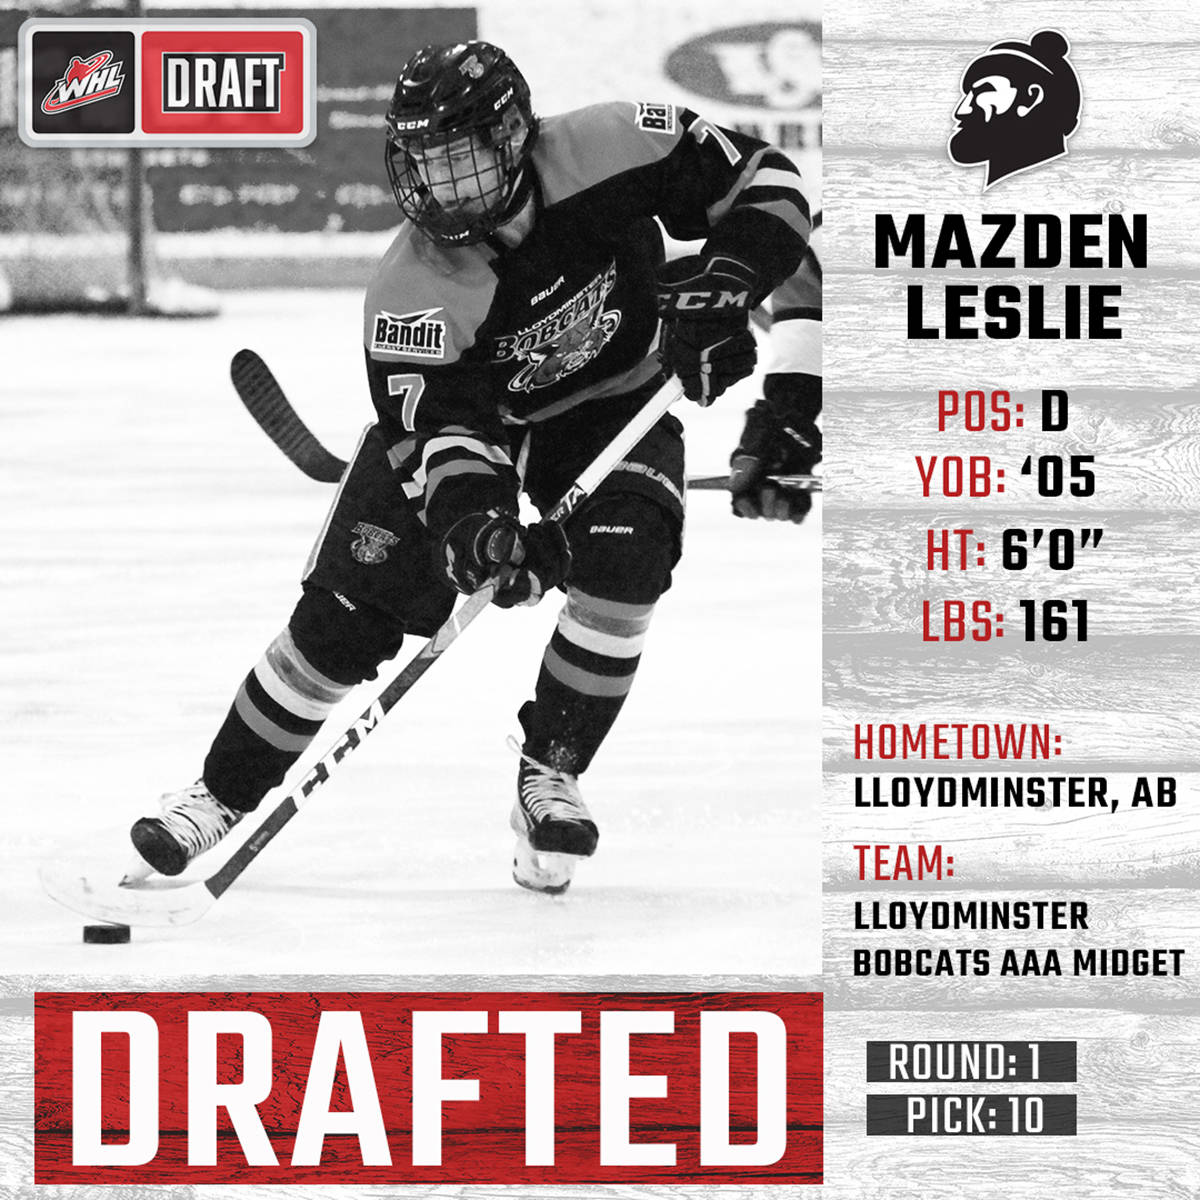 Vancouver Giants have used their 10th overall pick in the 2020 WHL Bantam Draft to select 2005-born defenceman Mazden Leslie from Lloydminster.